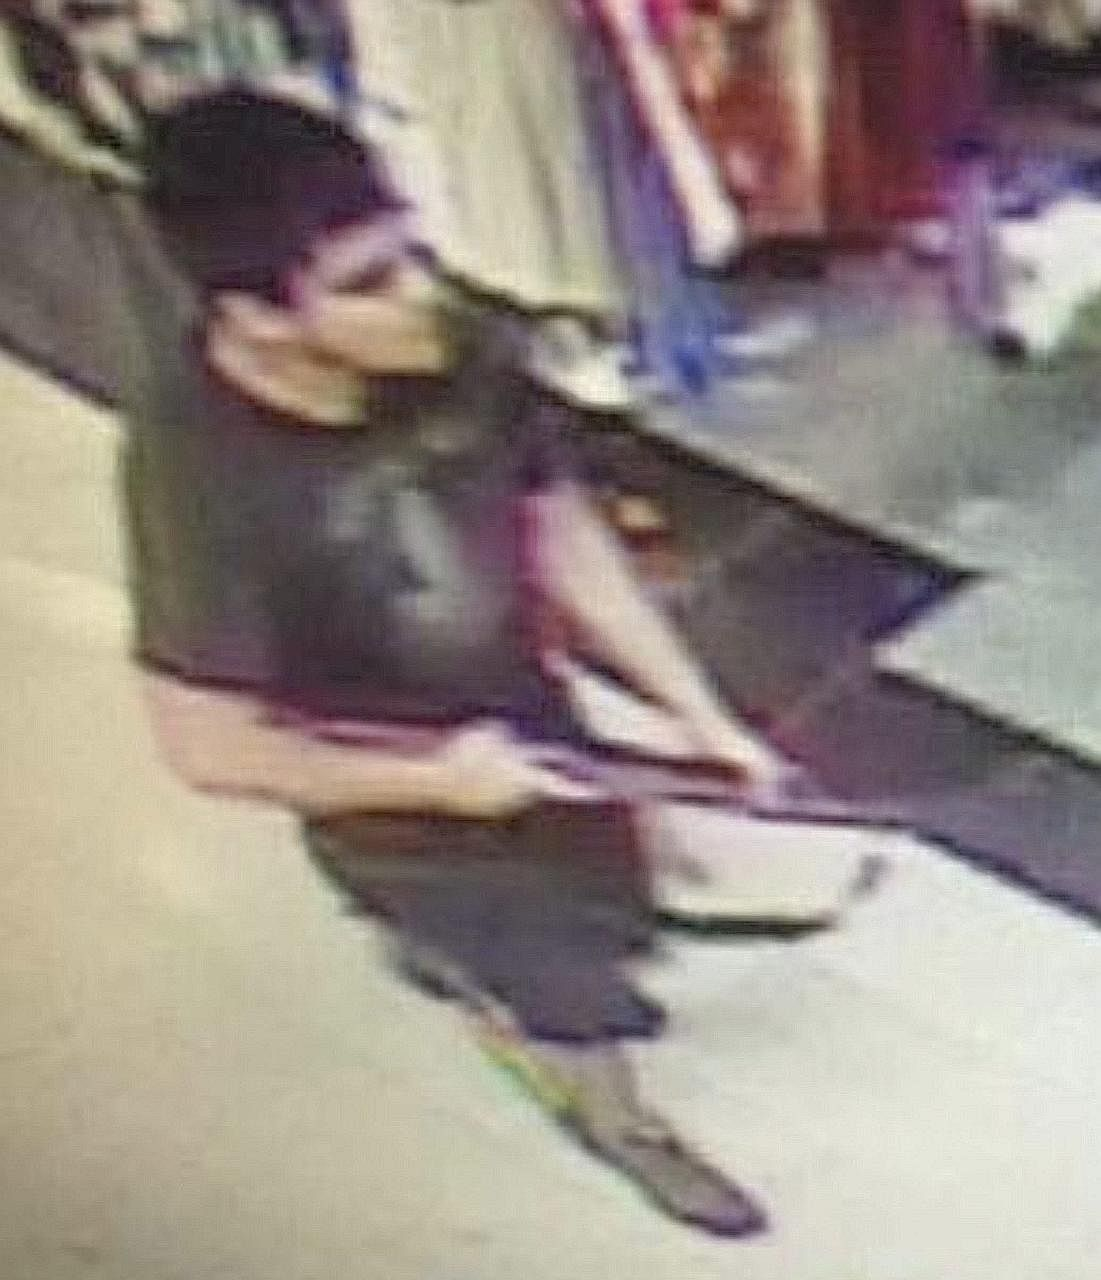 Police at the Cascade Mall (left) in Washington state after Friday night's shootings by a man (above, captured on surveillance video) armed with a rifle.